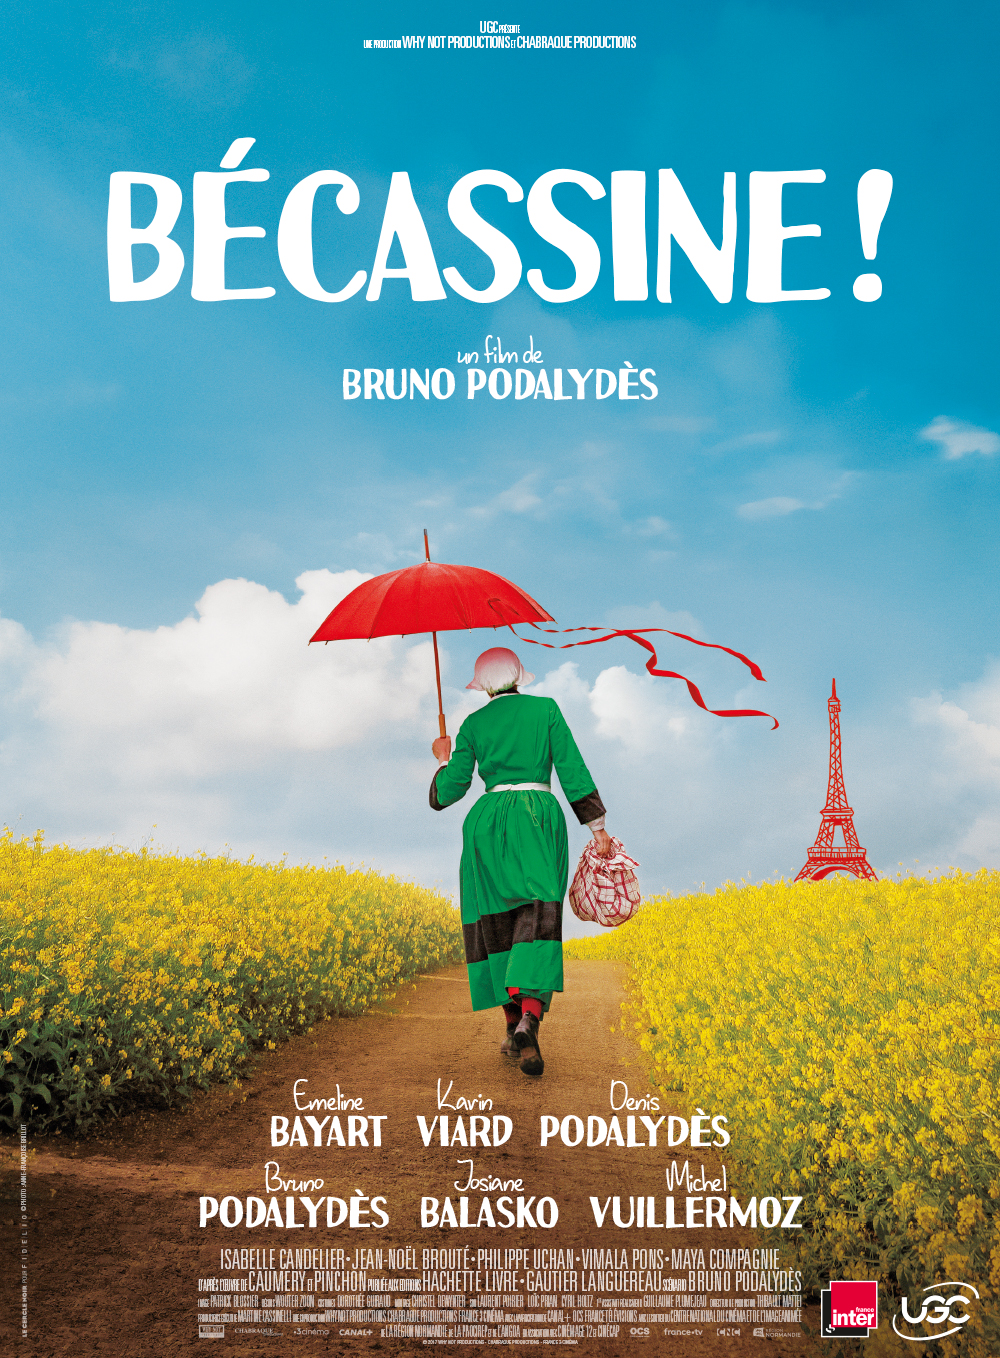 Image du film Bécassine!